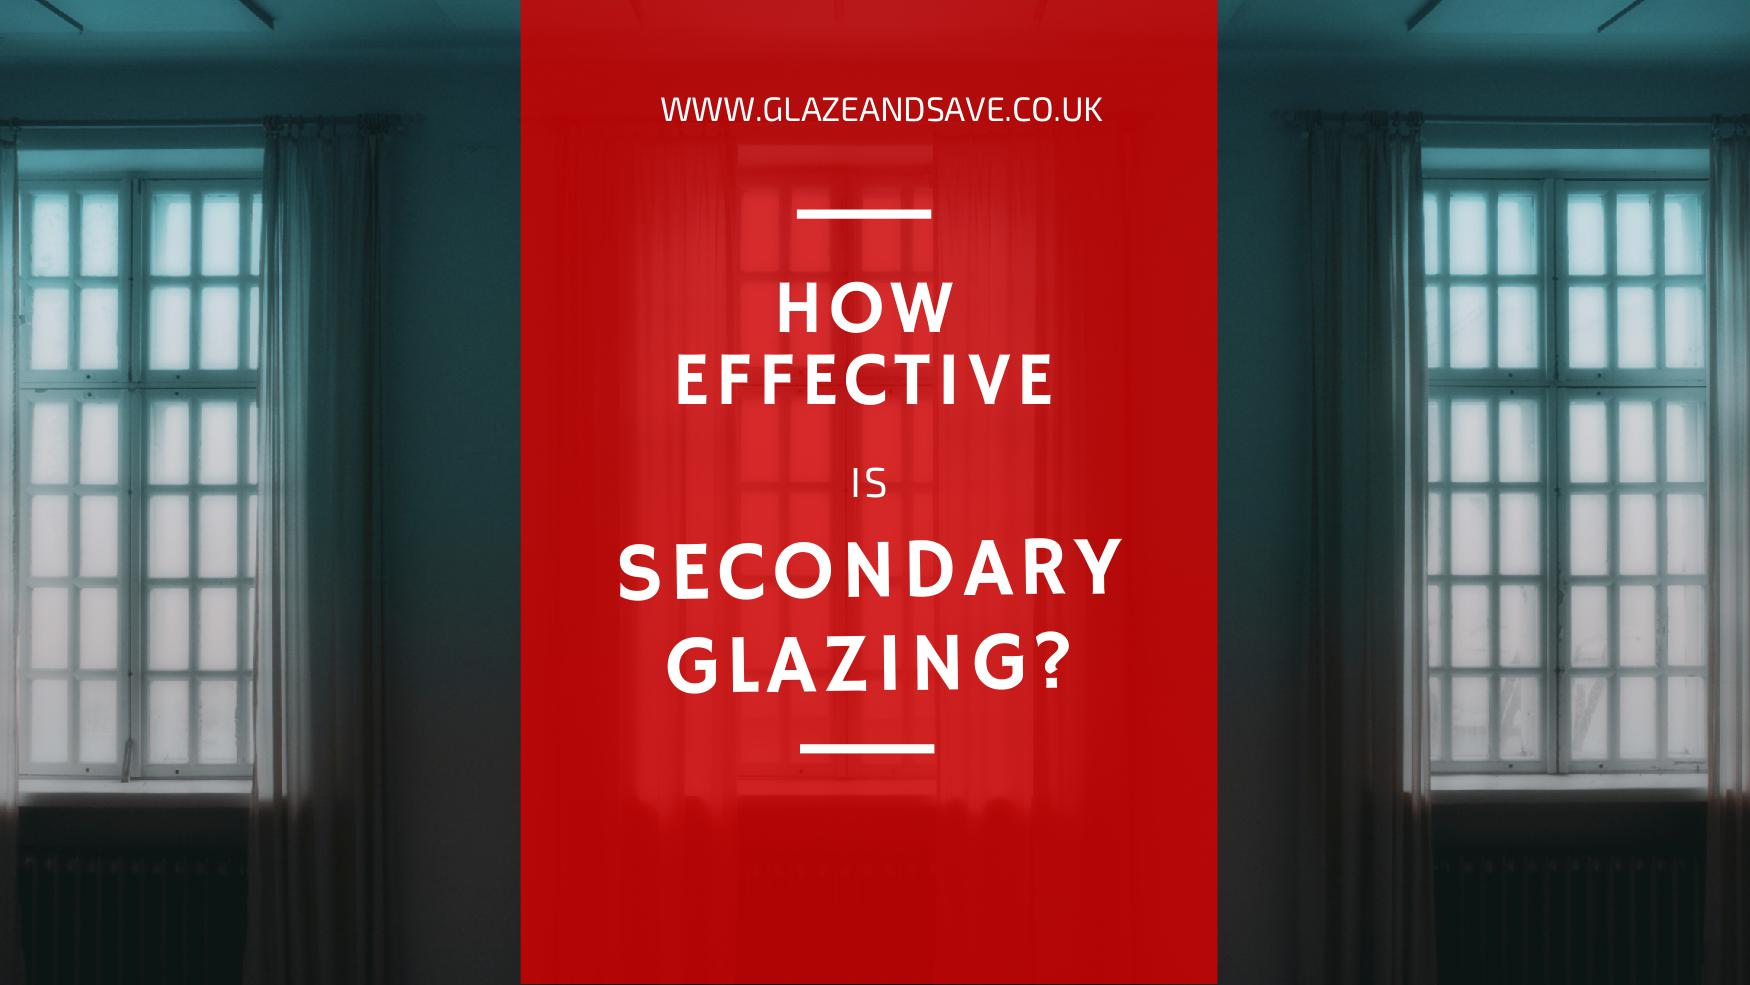 How effective is secondary glazing by Glaze and Save bespoke magnetic secondary glazing and draught proofing specialists based in Perth UK